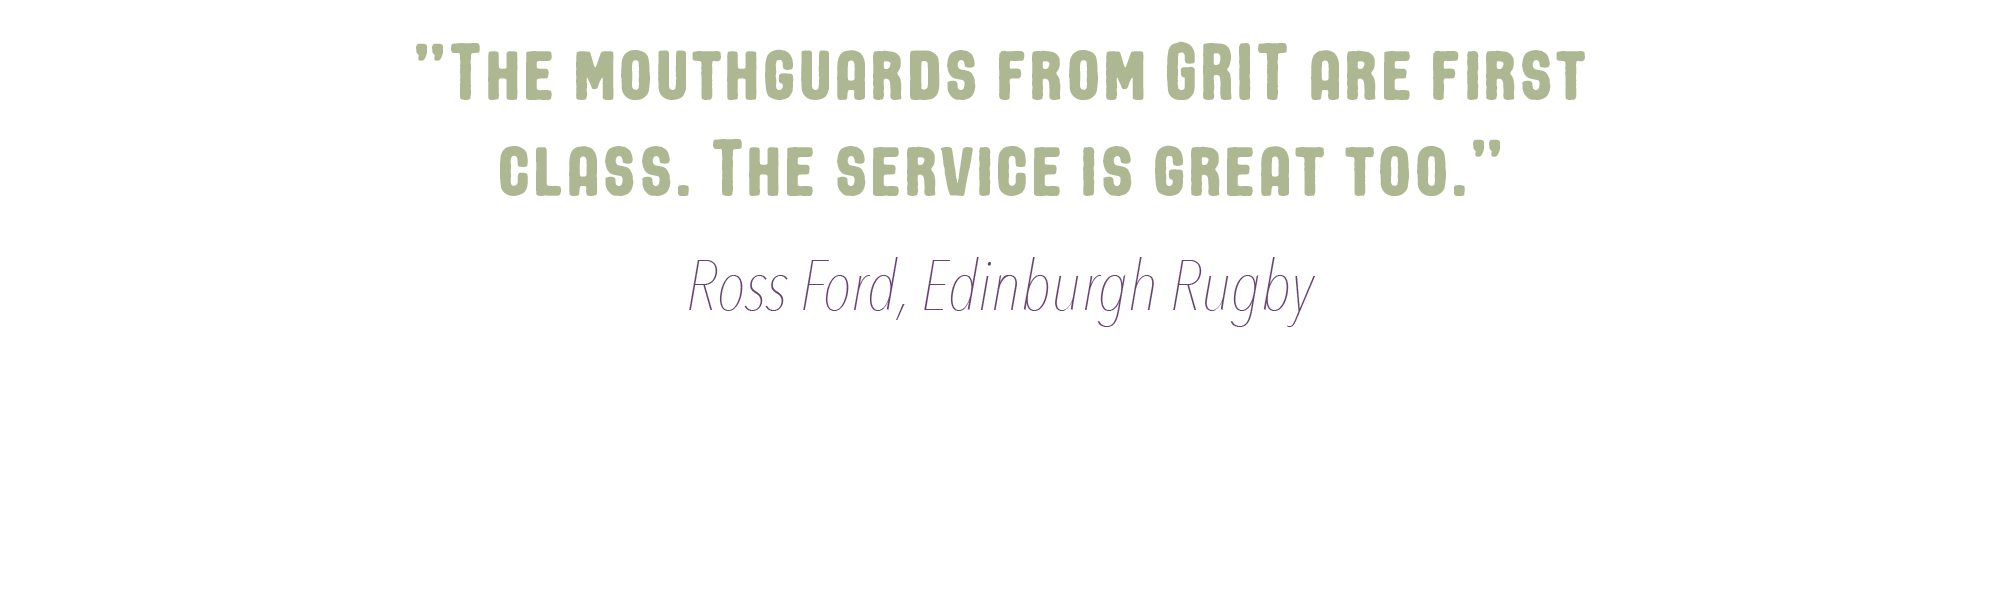 GRIT-quotes5.jpg